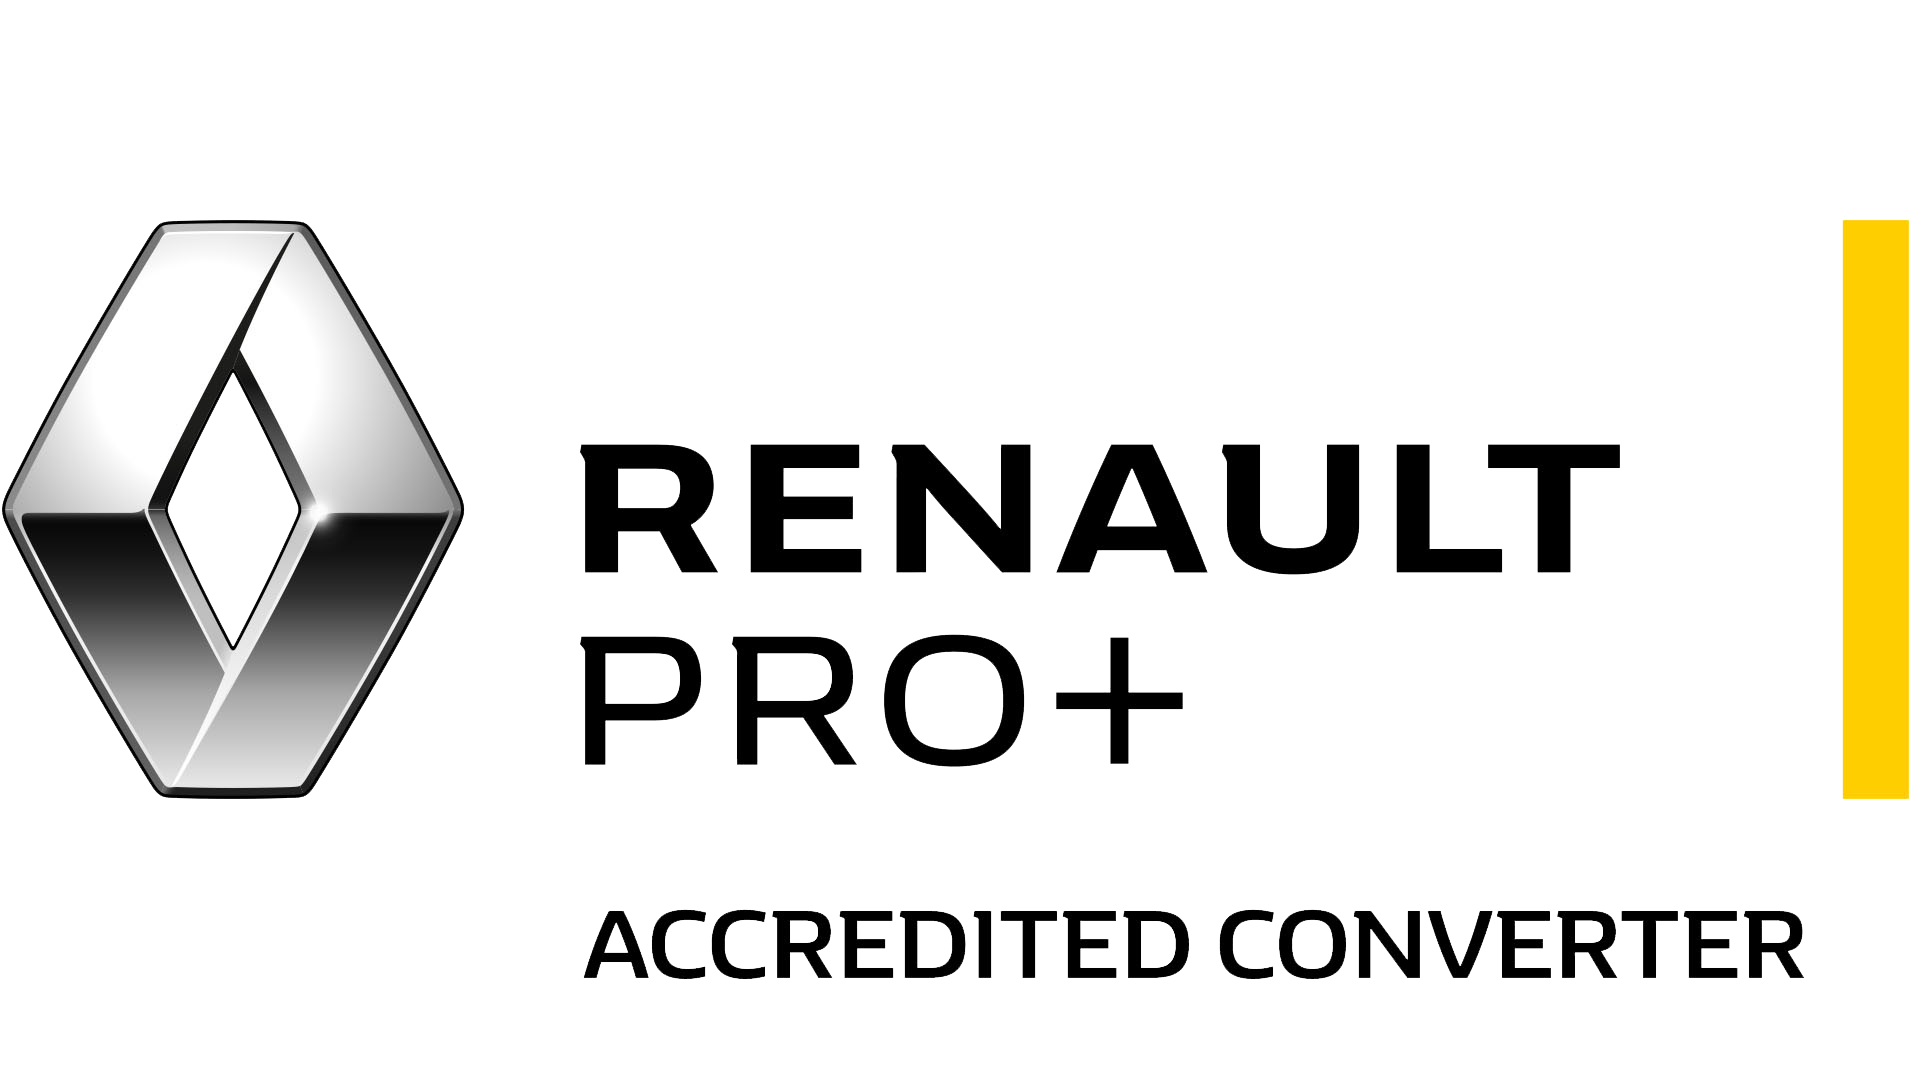 Renault accredited converter